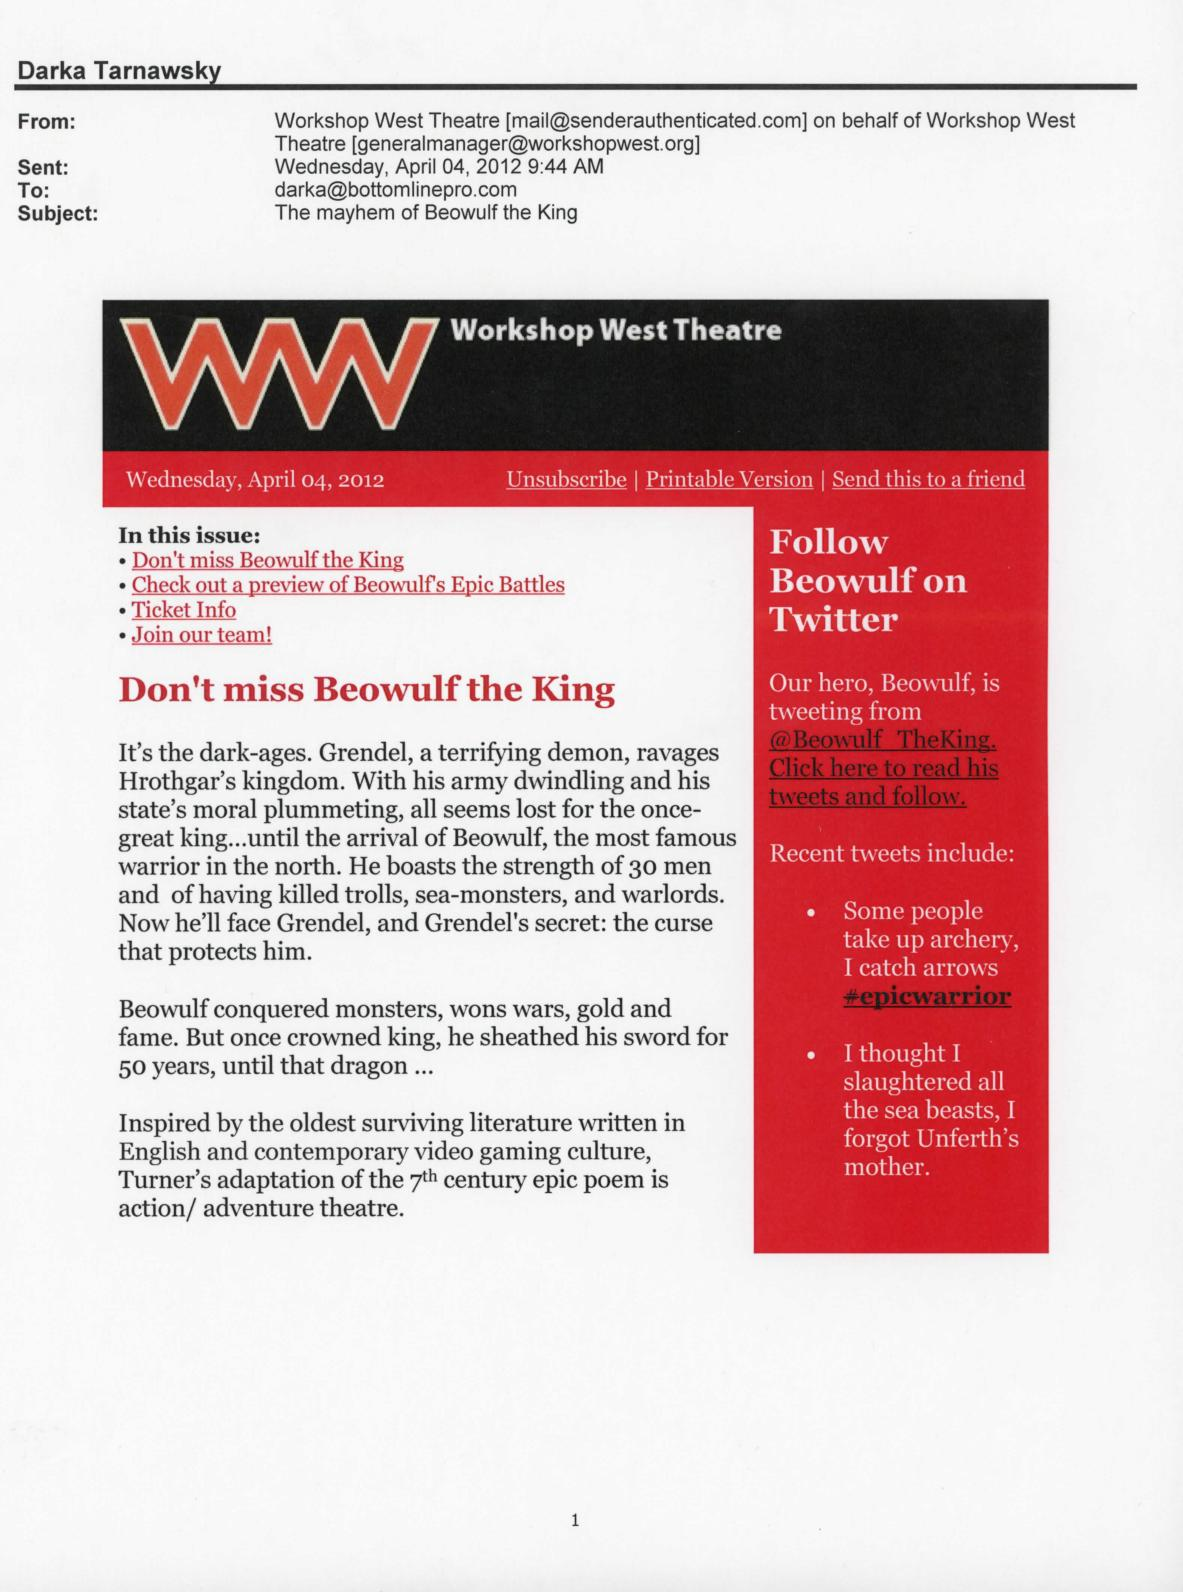 Beawulf The King (2012)- Production Information 2_PDF-page-001.jpg